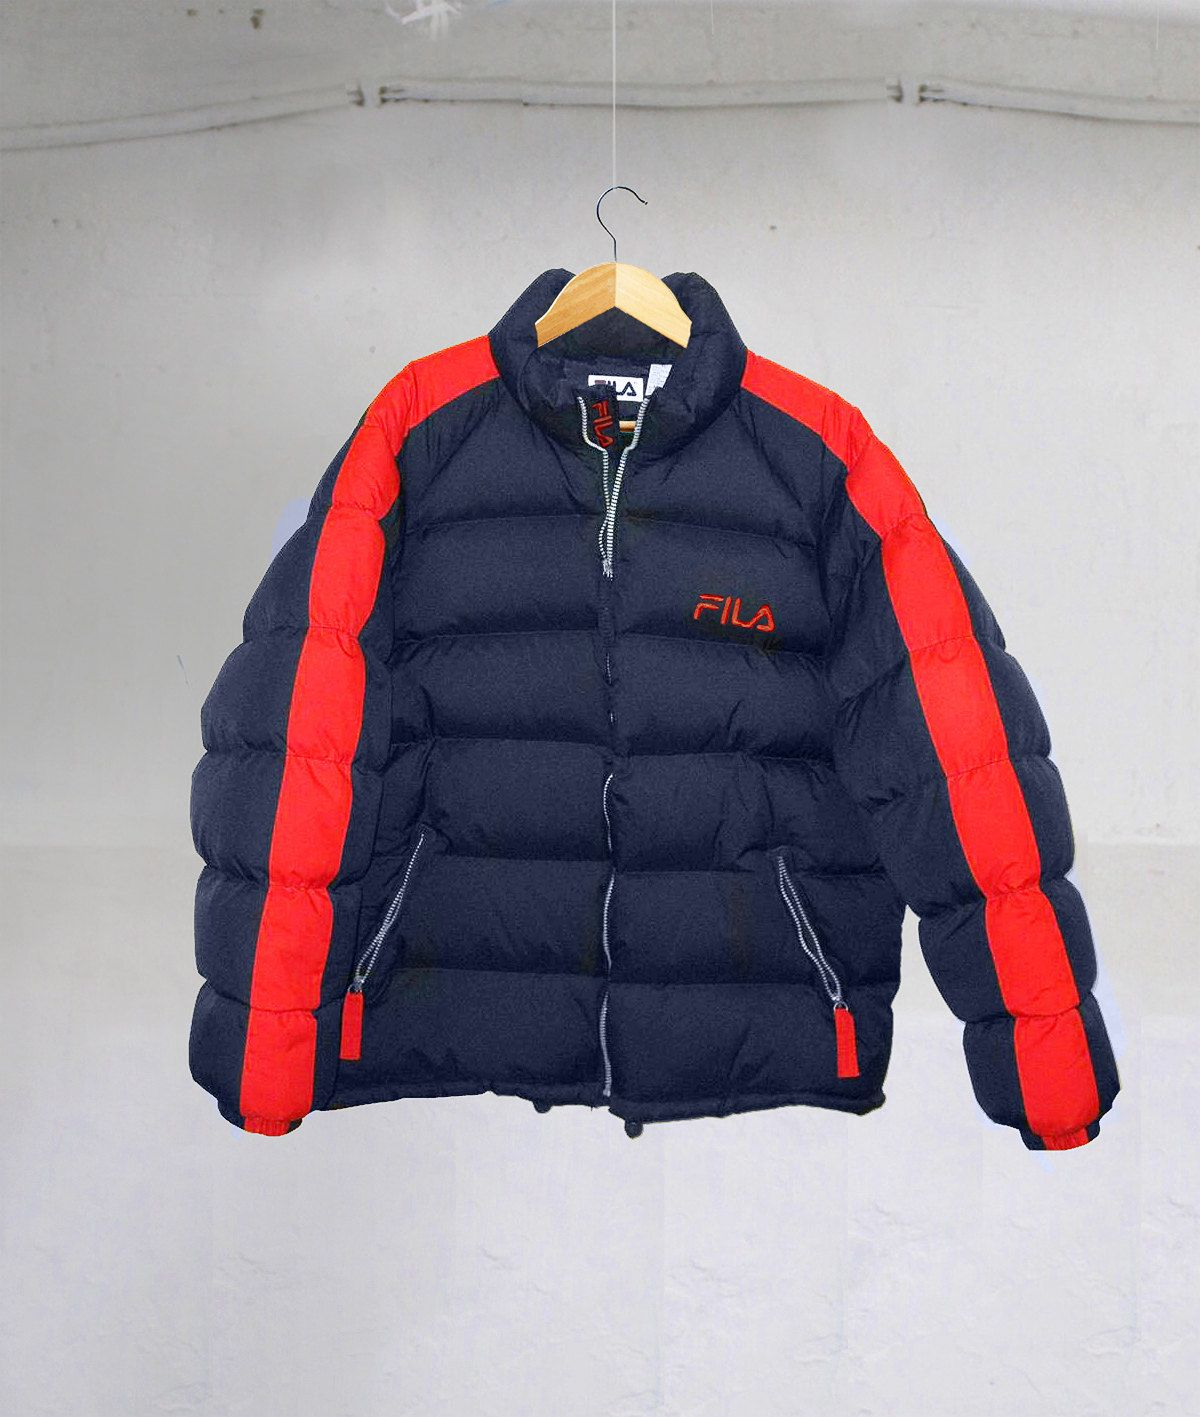 Fila down jacket